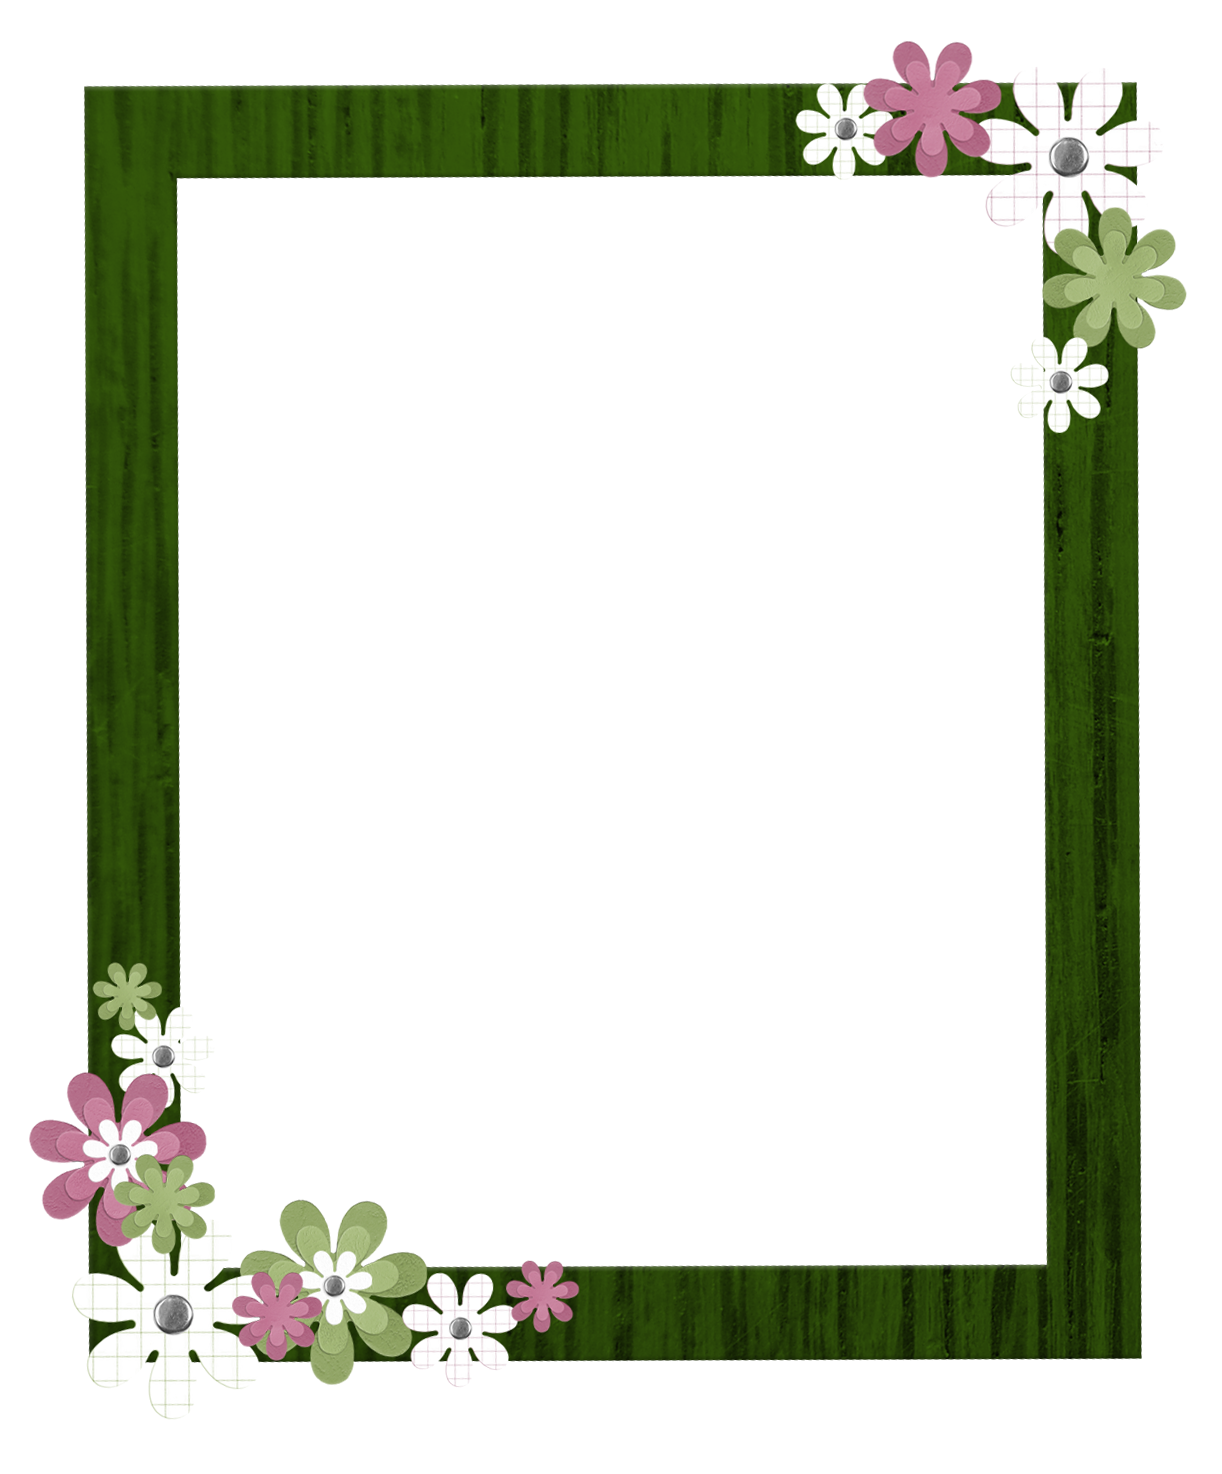 marisa-lerin-green-flower-frame-asset-pink-white-wood-embellishment ...